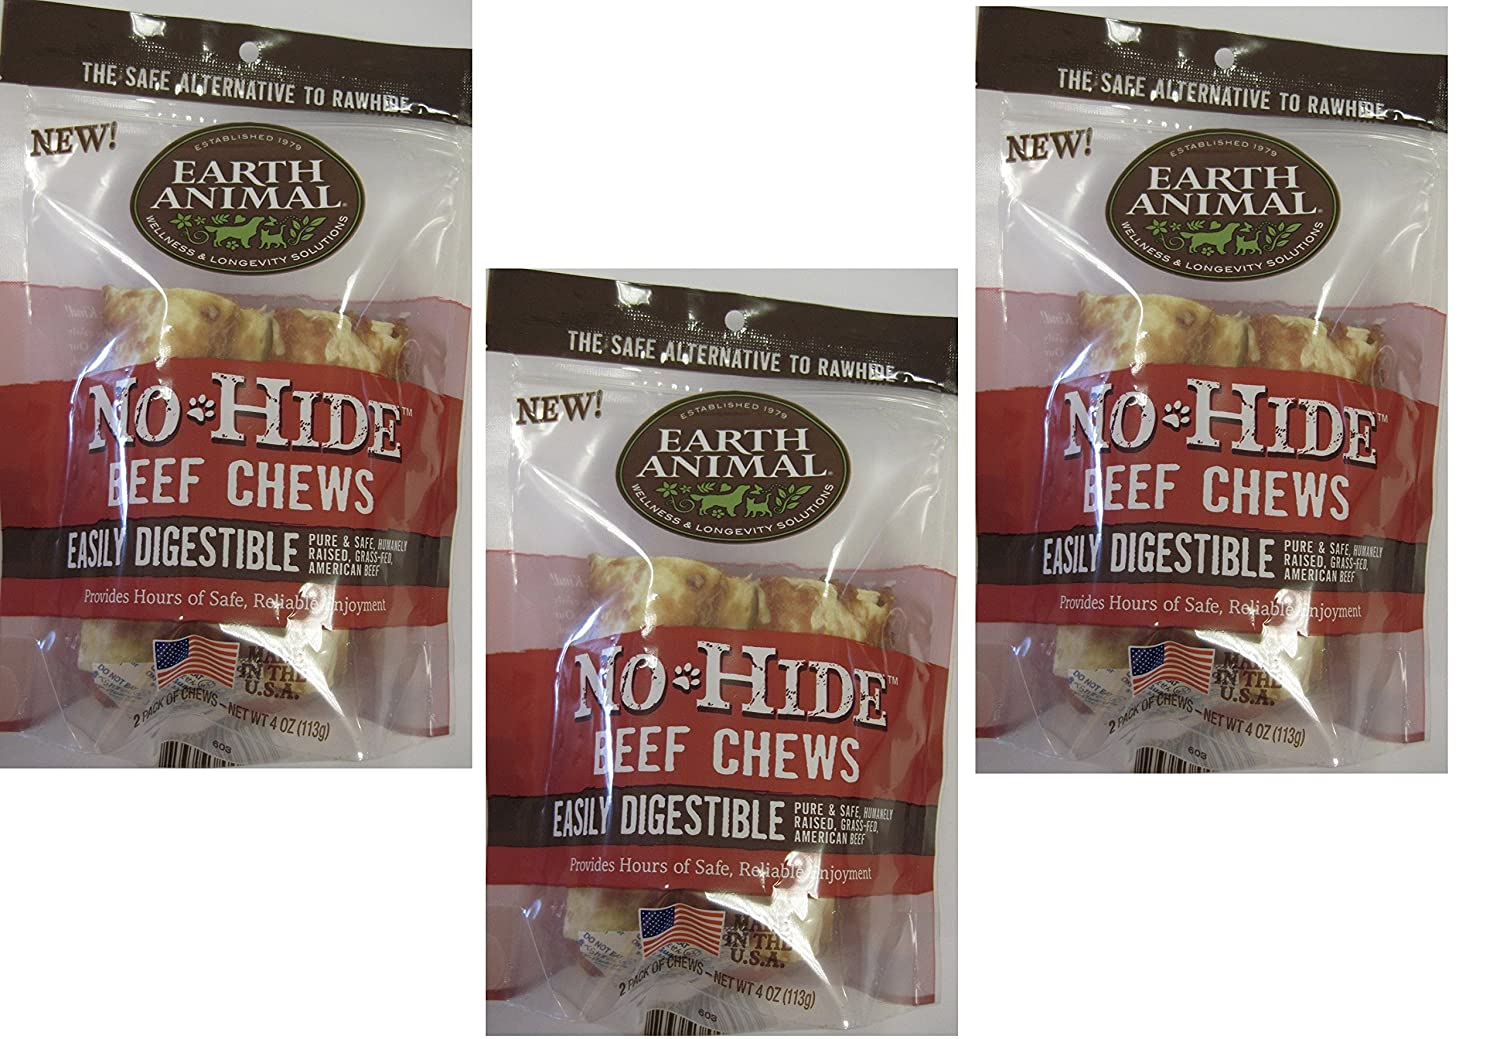 (3 Packages) Earth Animal No-Hide Beef Chews 4  (2 Chew Per Pack, 6 Chew Total)